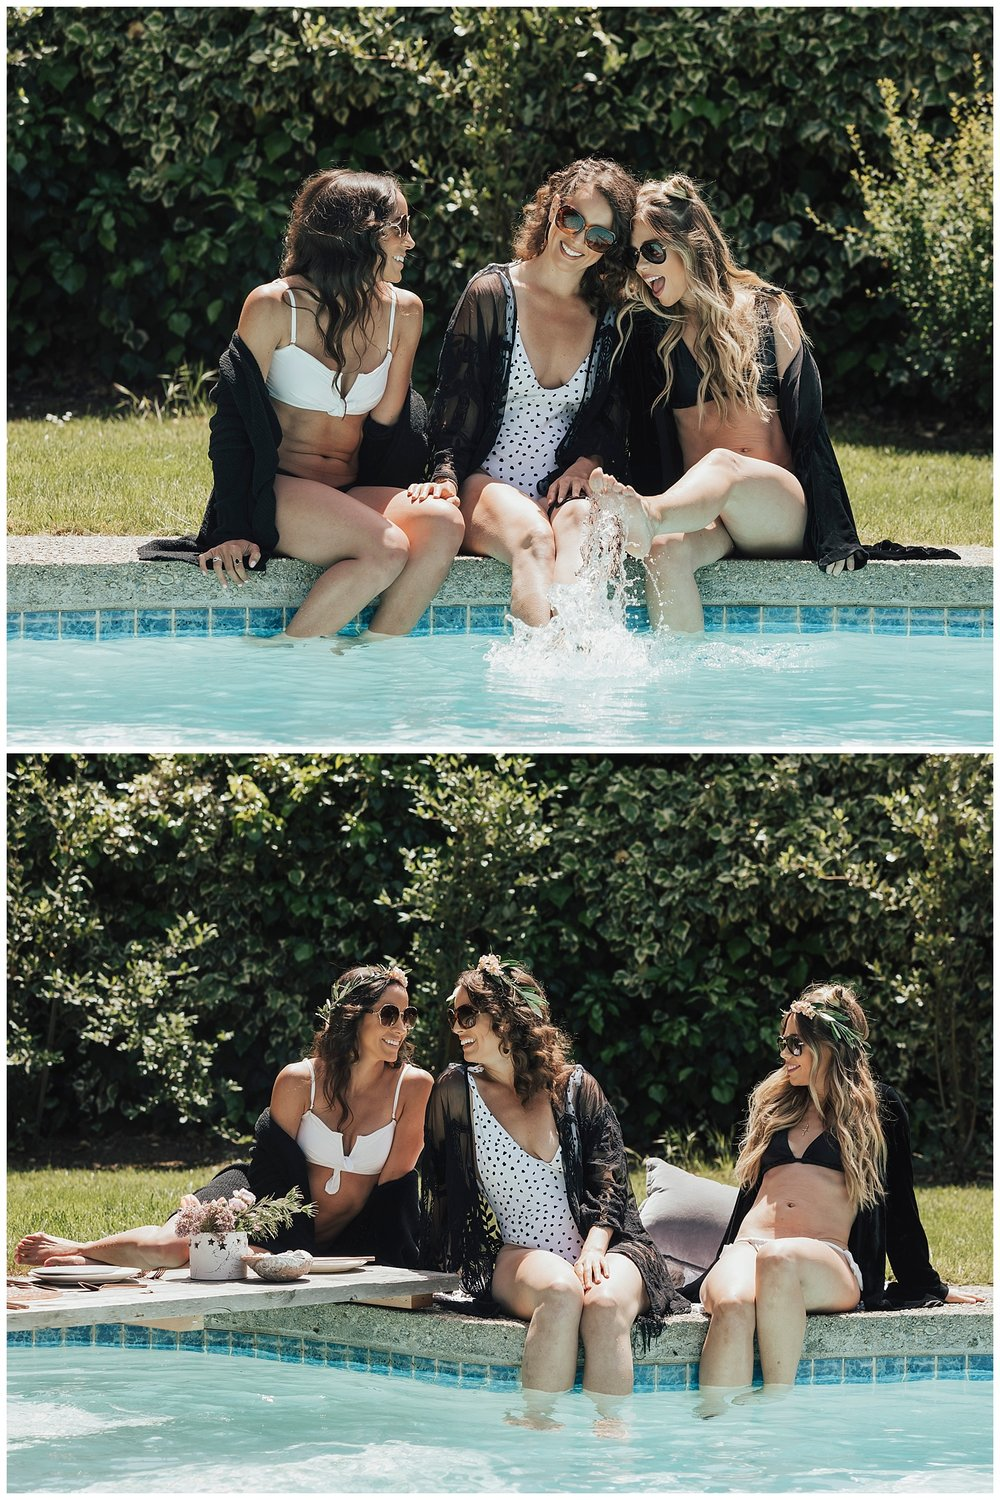 bachelorette-pool-party-carmel-valley-california.jpg